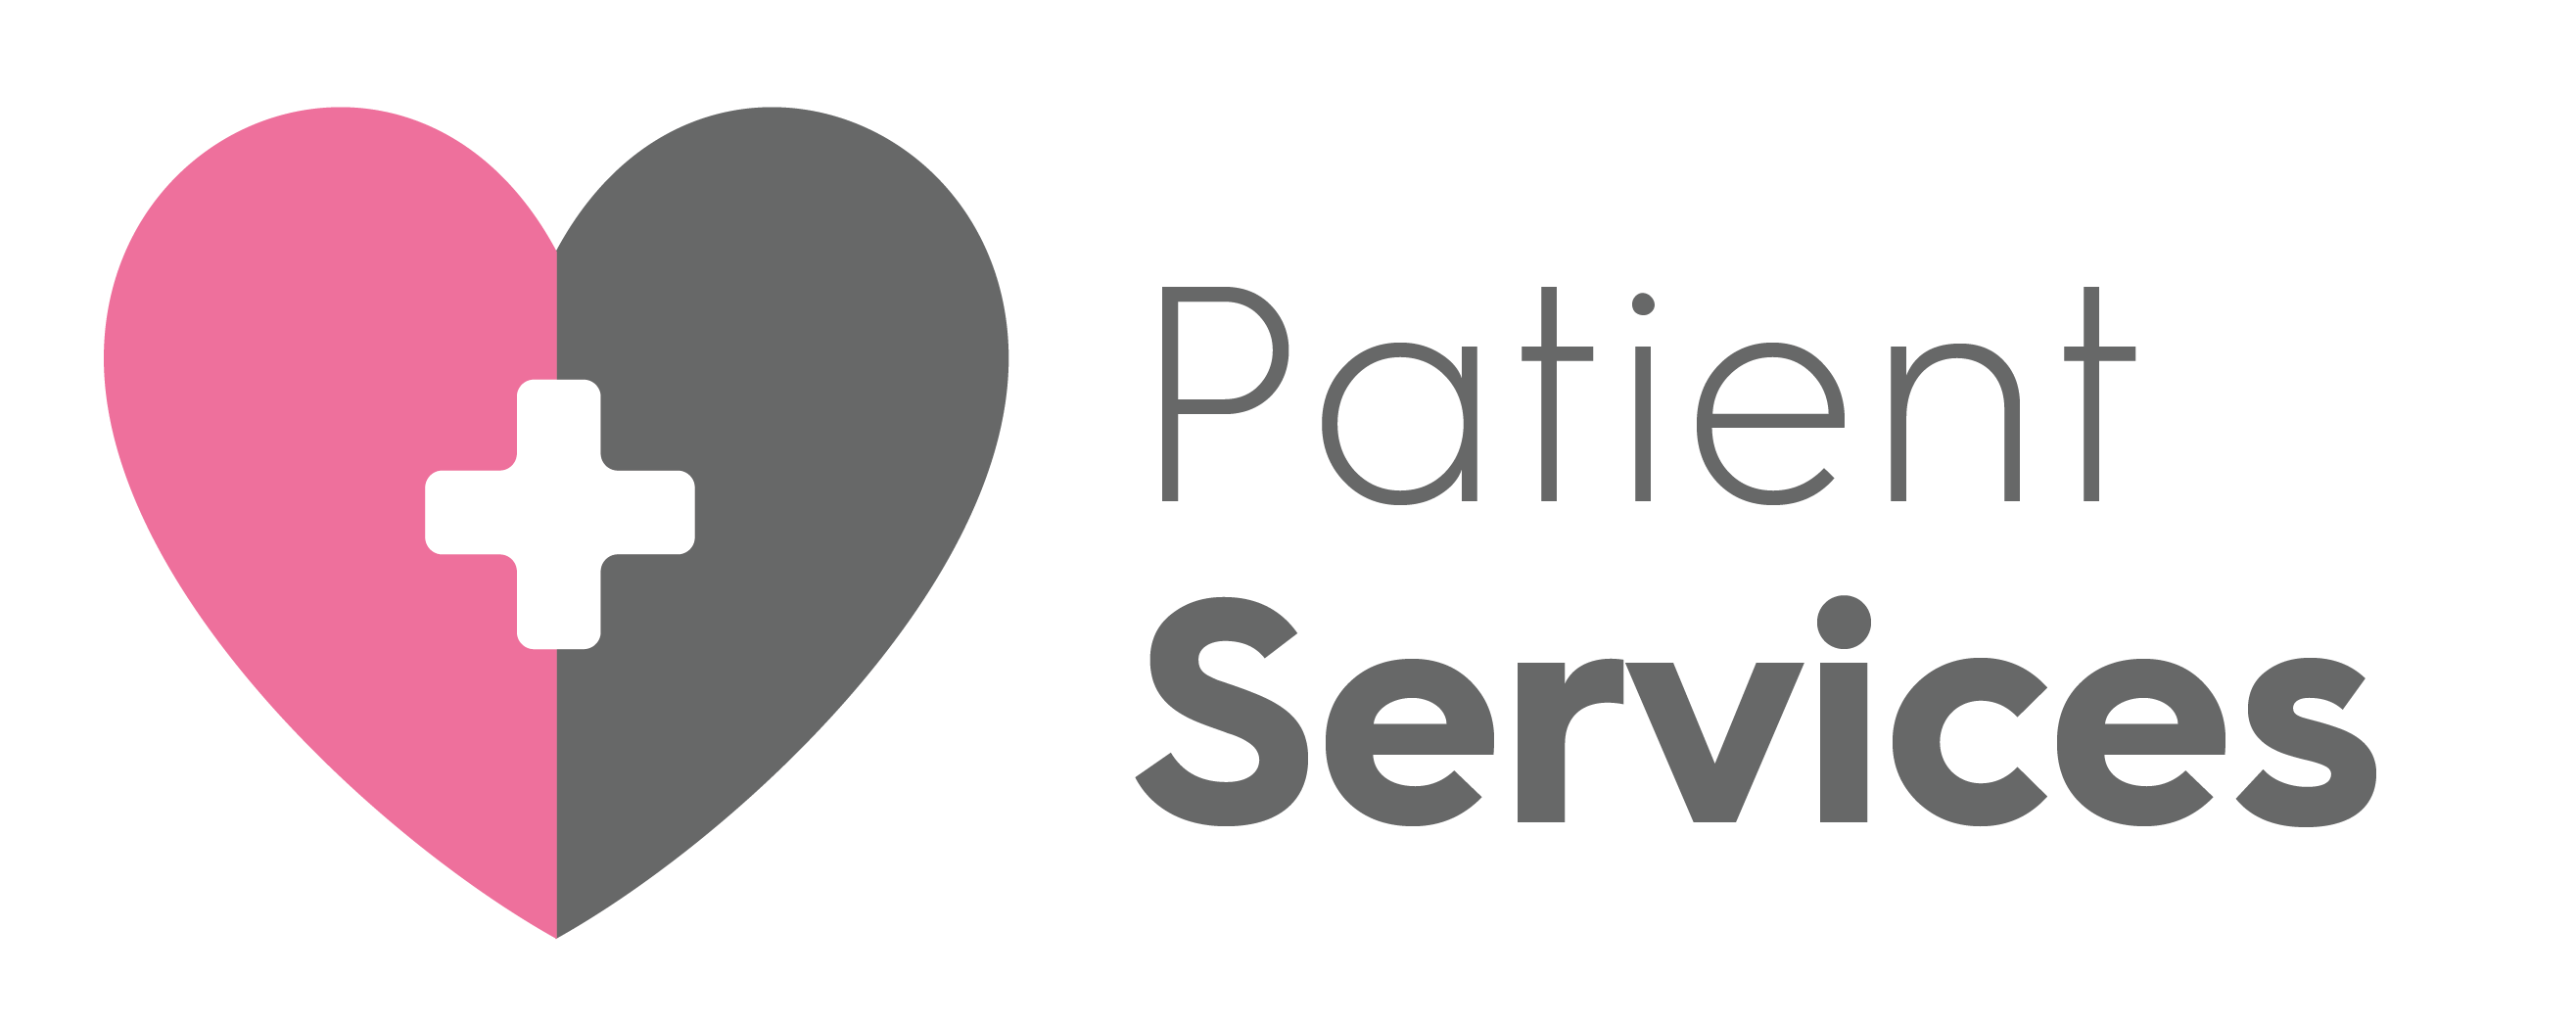 CHS_Patient Services logo